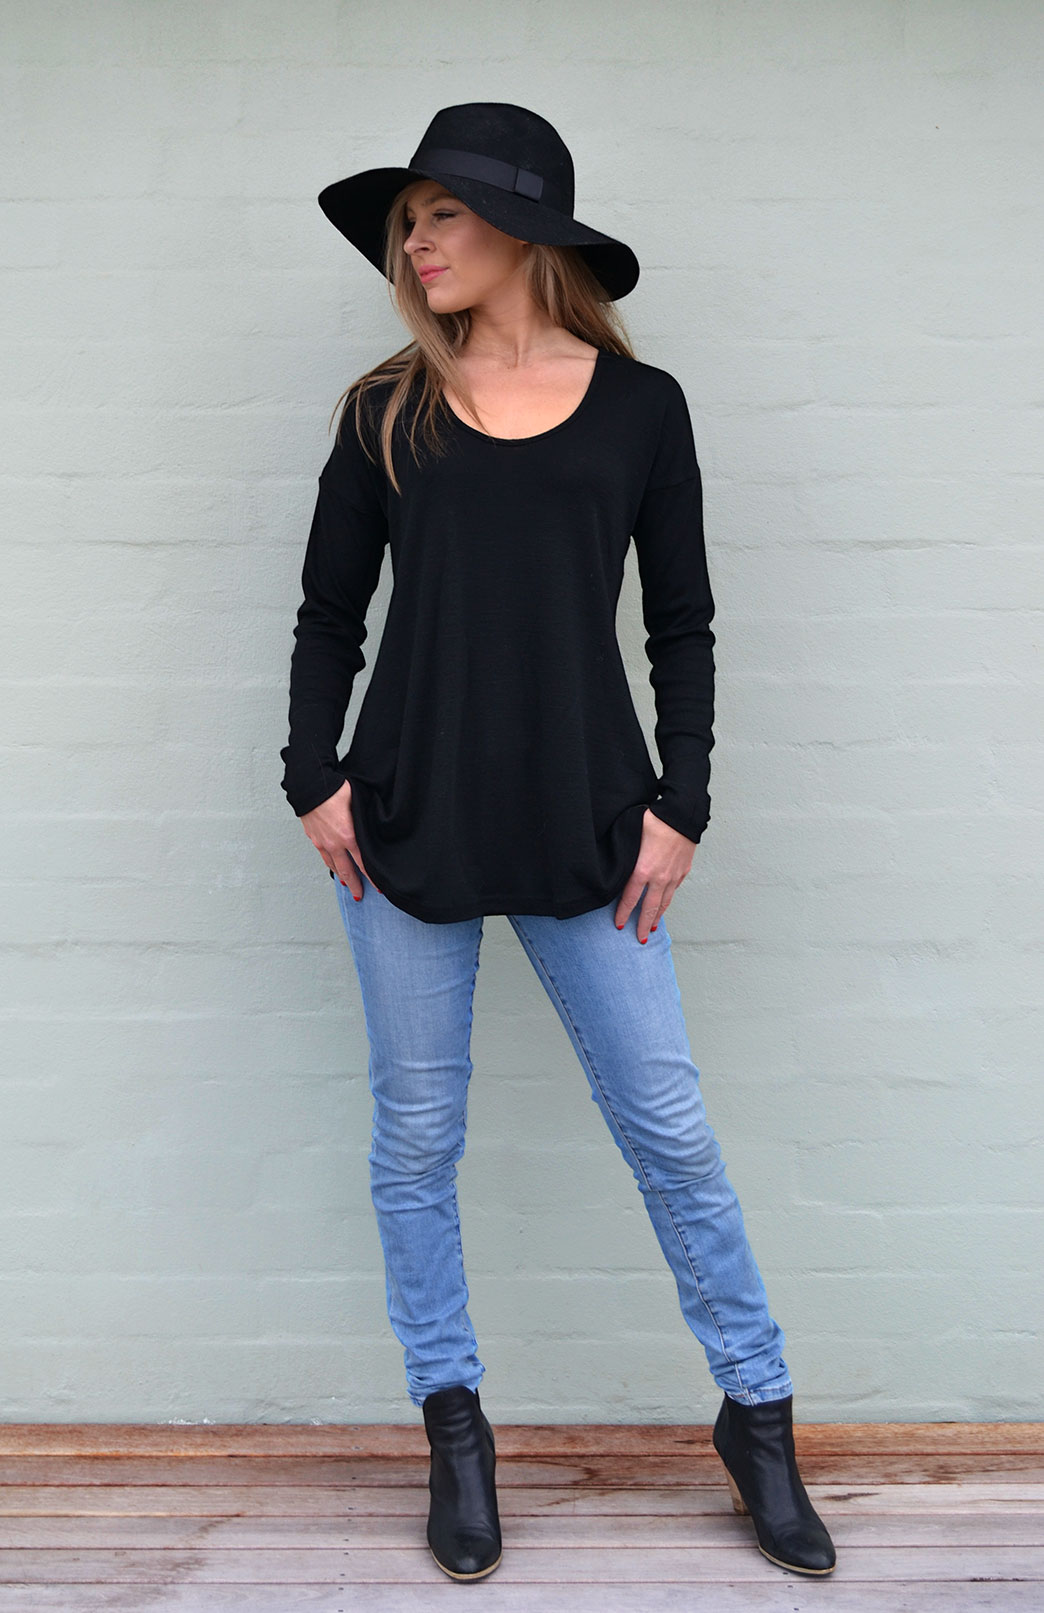 Wave Top - Women's Relaxed Fit Black Wool Top with dropped shoulders - Smitten Merino Tasmania Australia